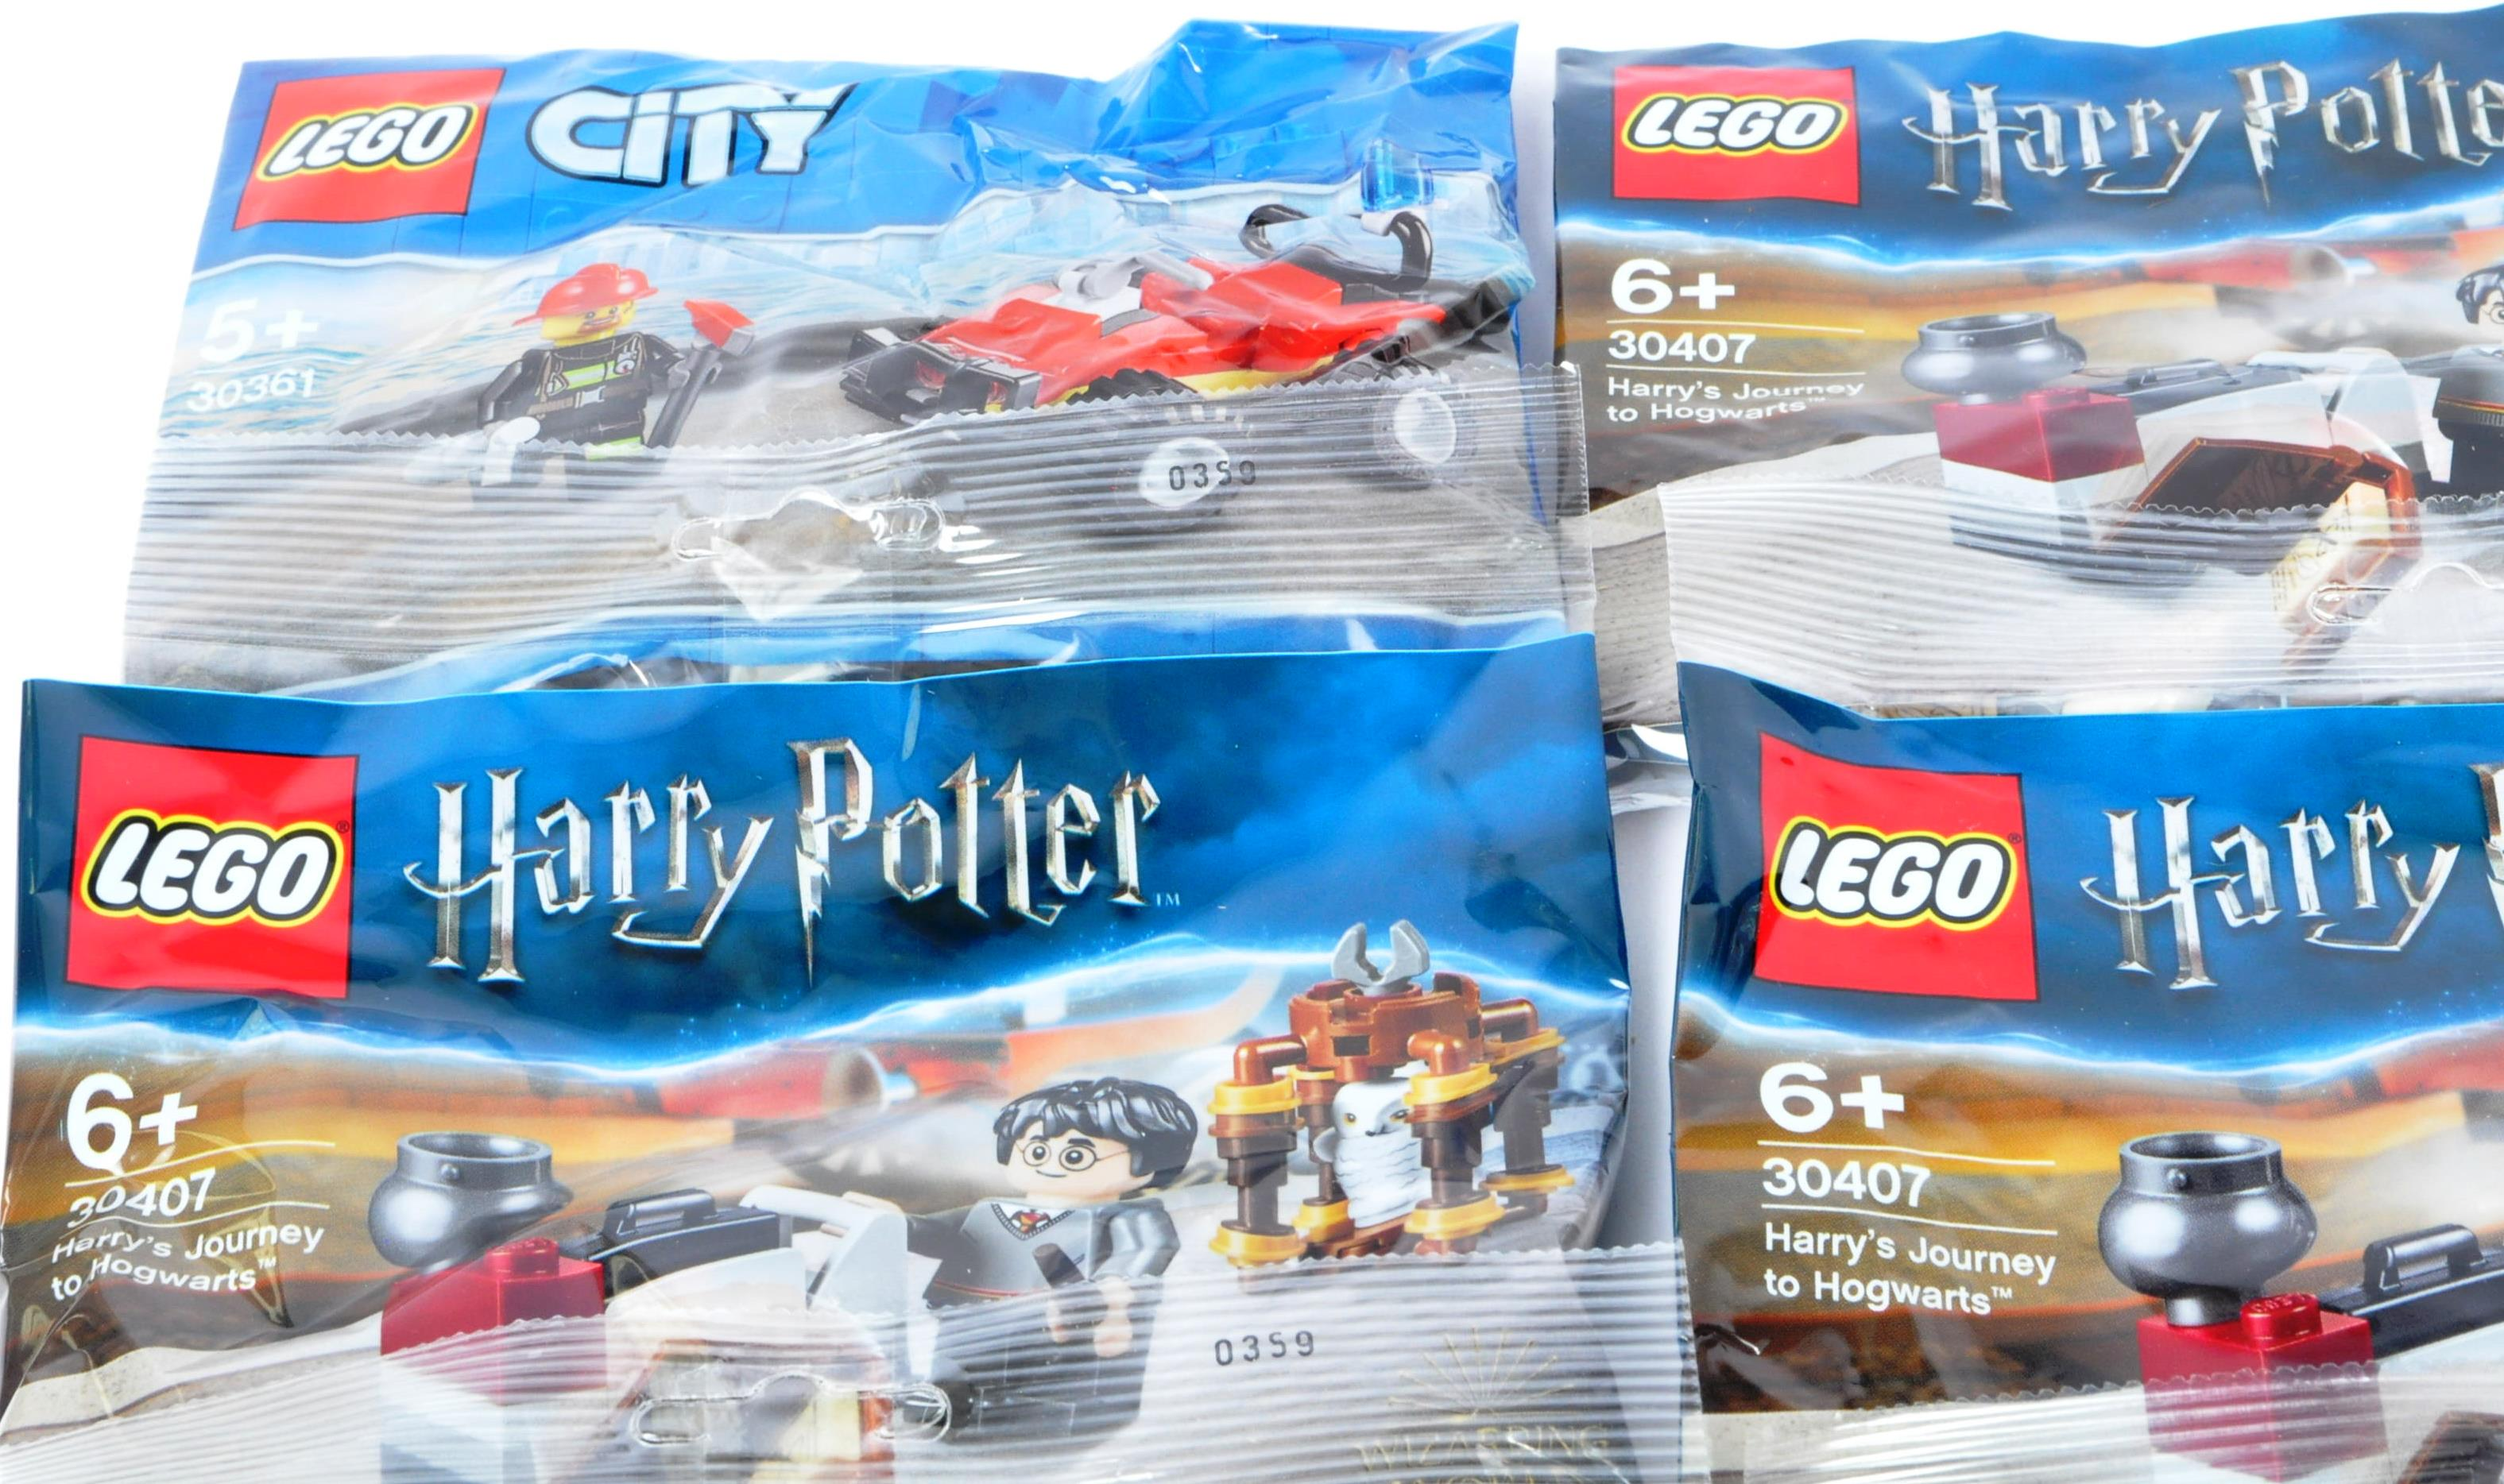 LEGO - LARGE COLLECTION OF LEGO MOVIE, CITY & HARRY POTTER SETS - Image 2 of 5